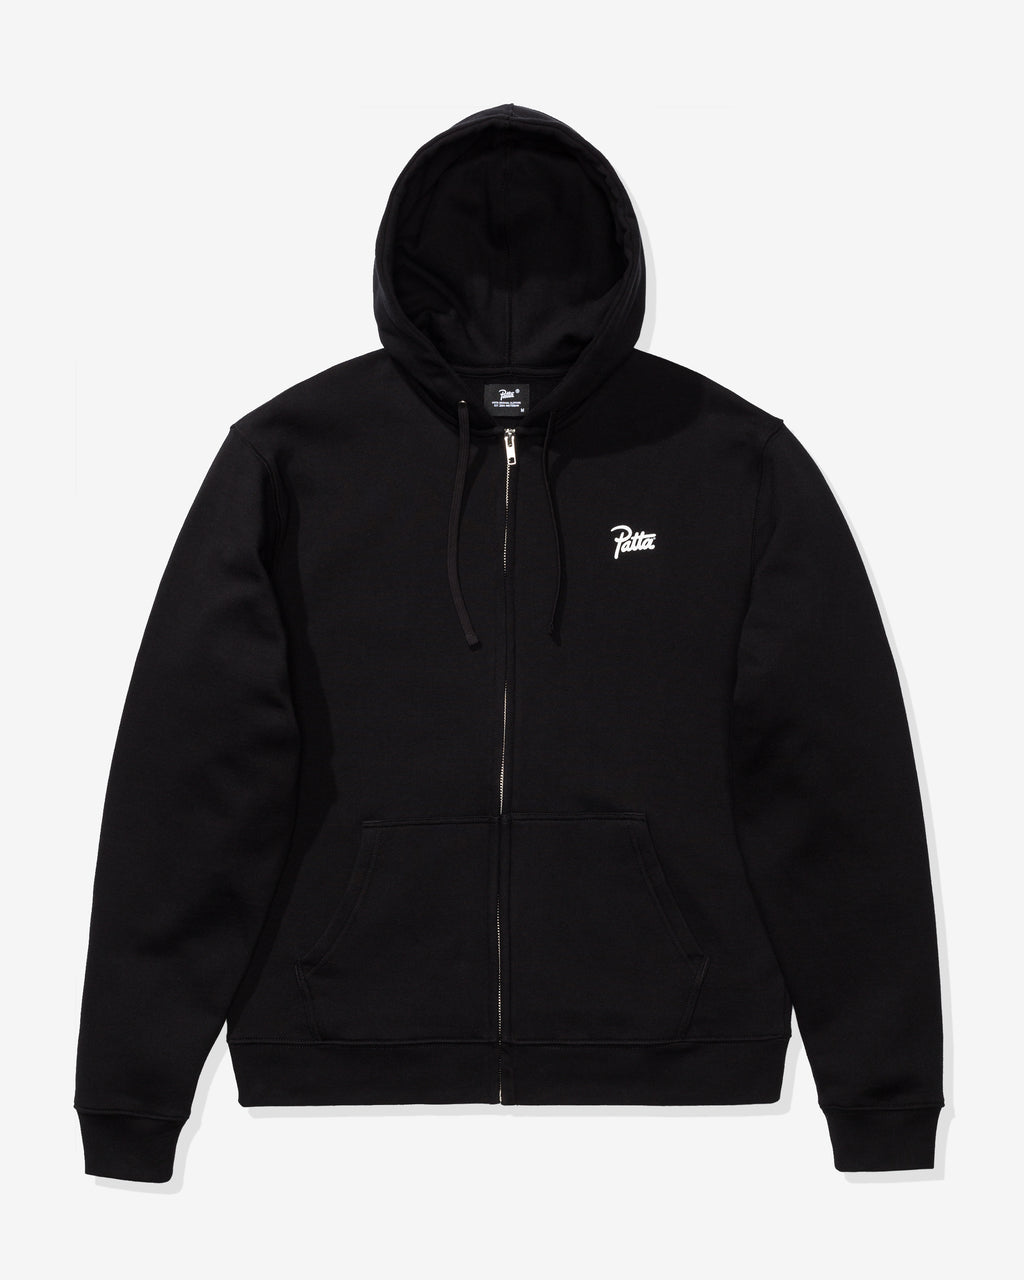 PATTA BASIC SUMMER ZIP HOODED SWEATER - BLACK